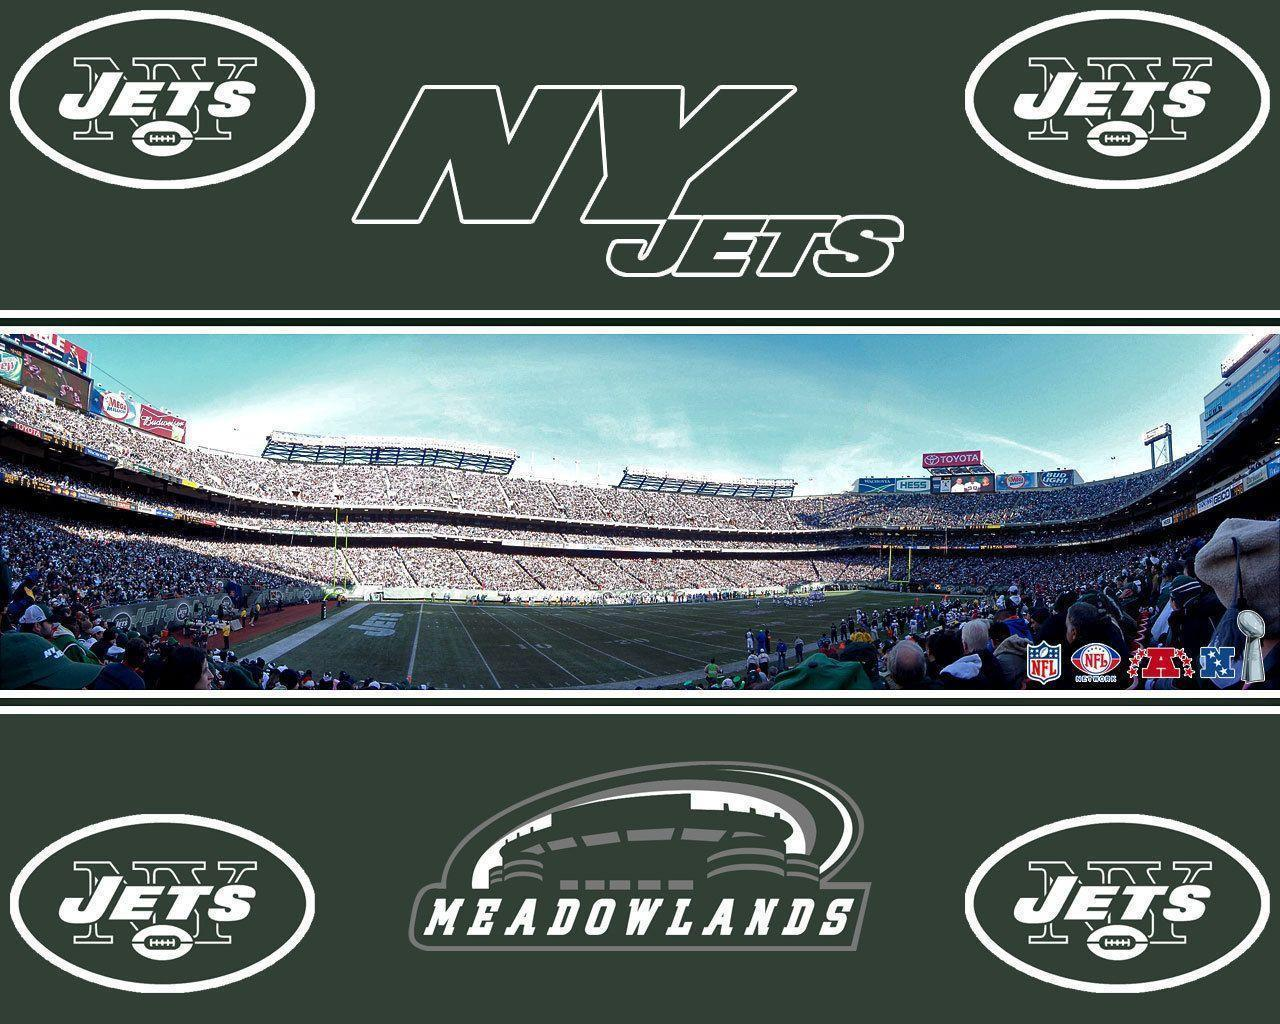 New York Jets image NY Jets HD wallpapers and backgrounds photos